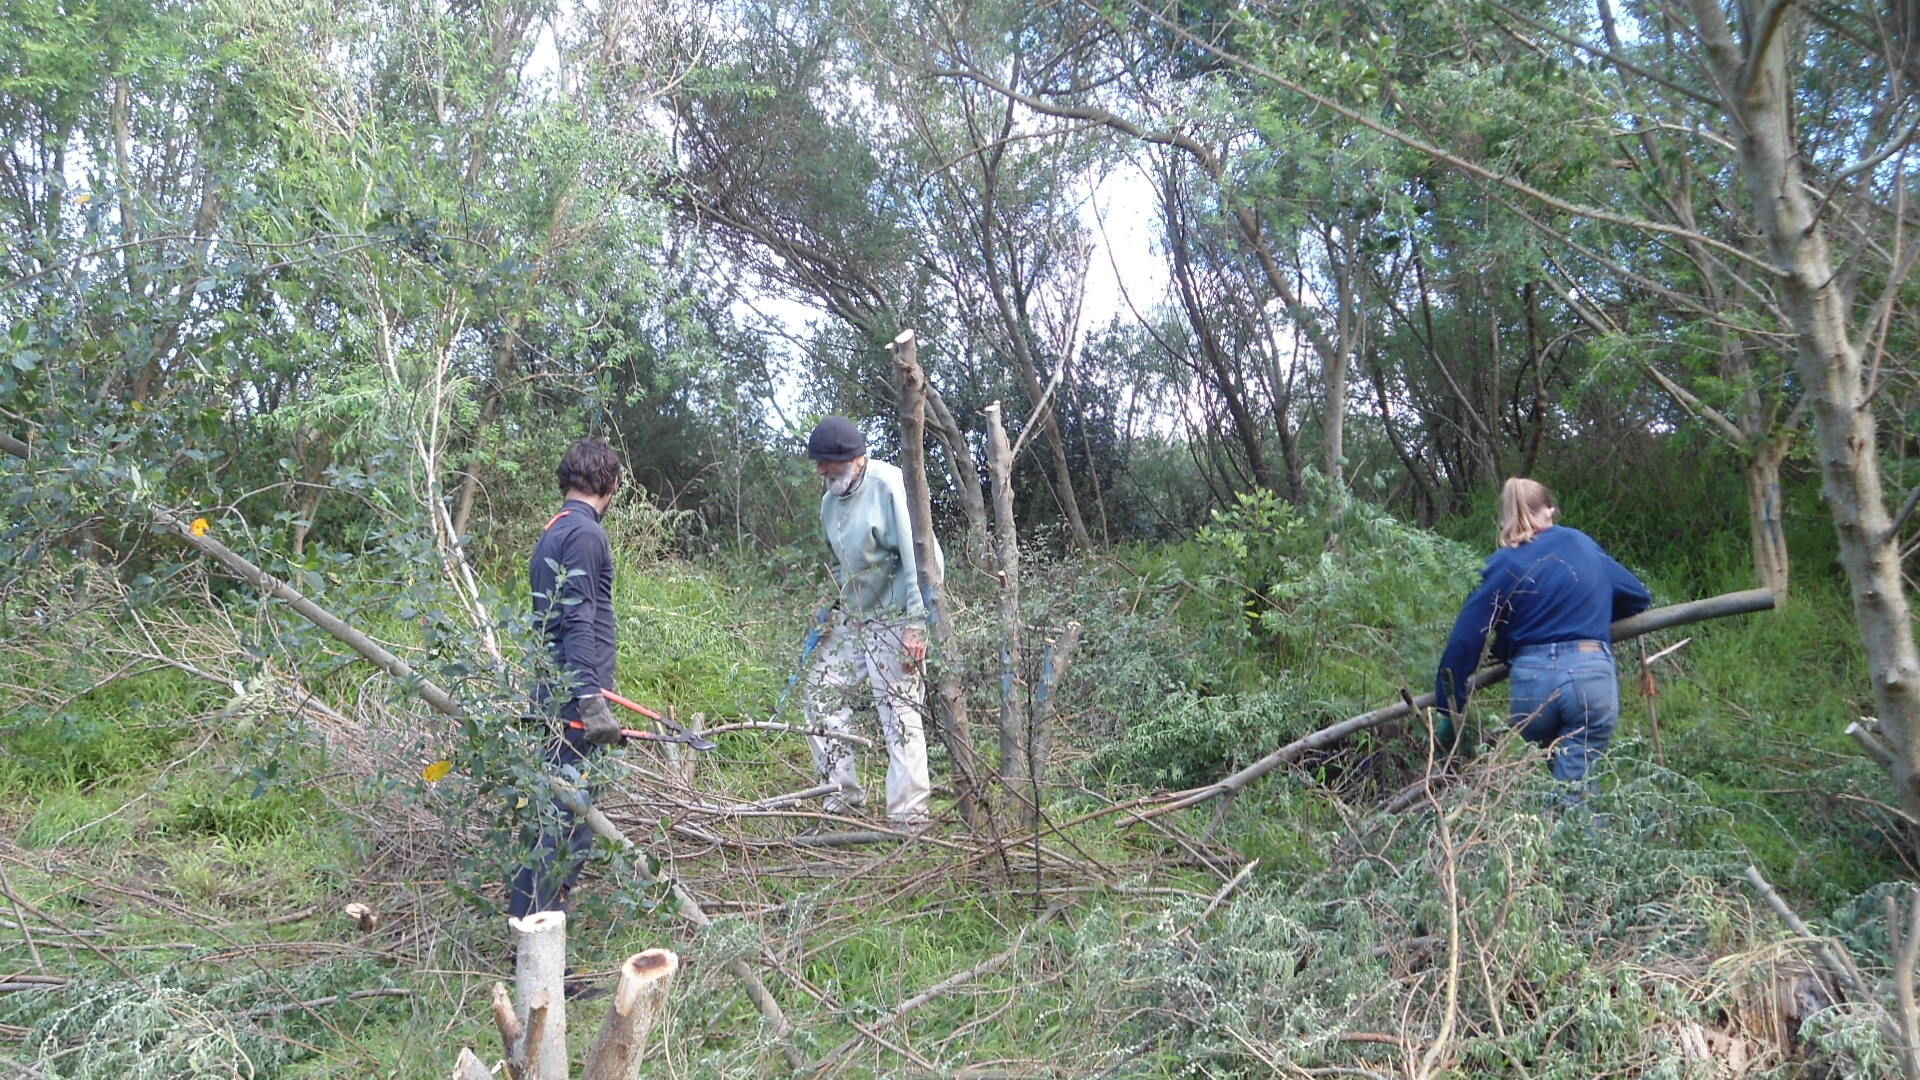 15. Peter Watson & youth sorting, pruning & clearing branches, 2nd June 2018